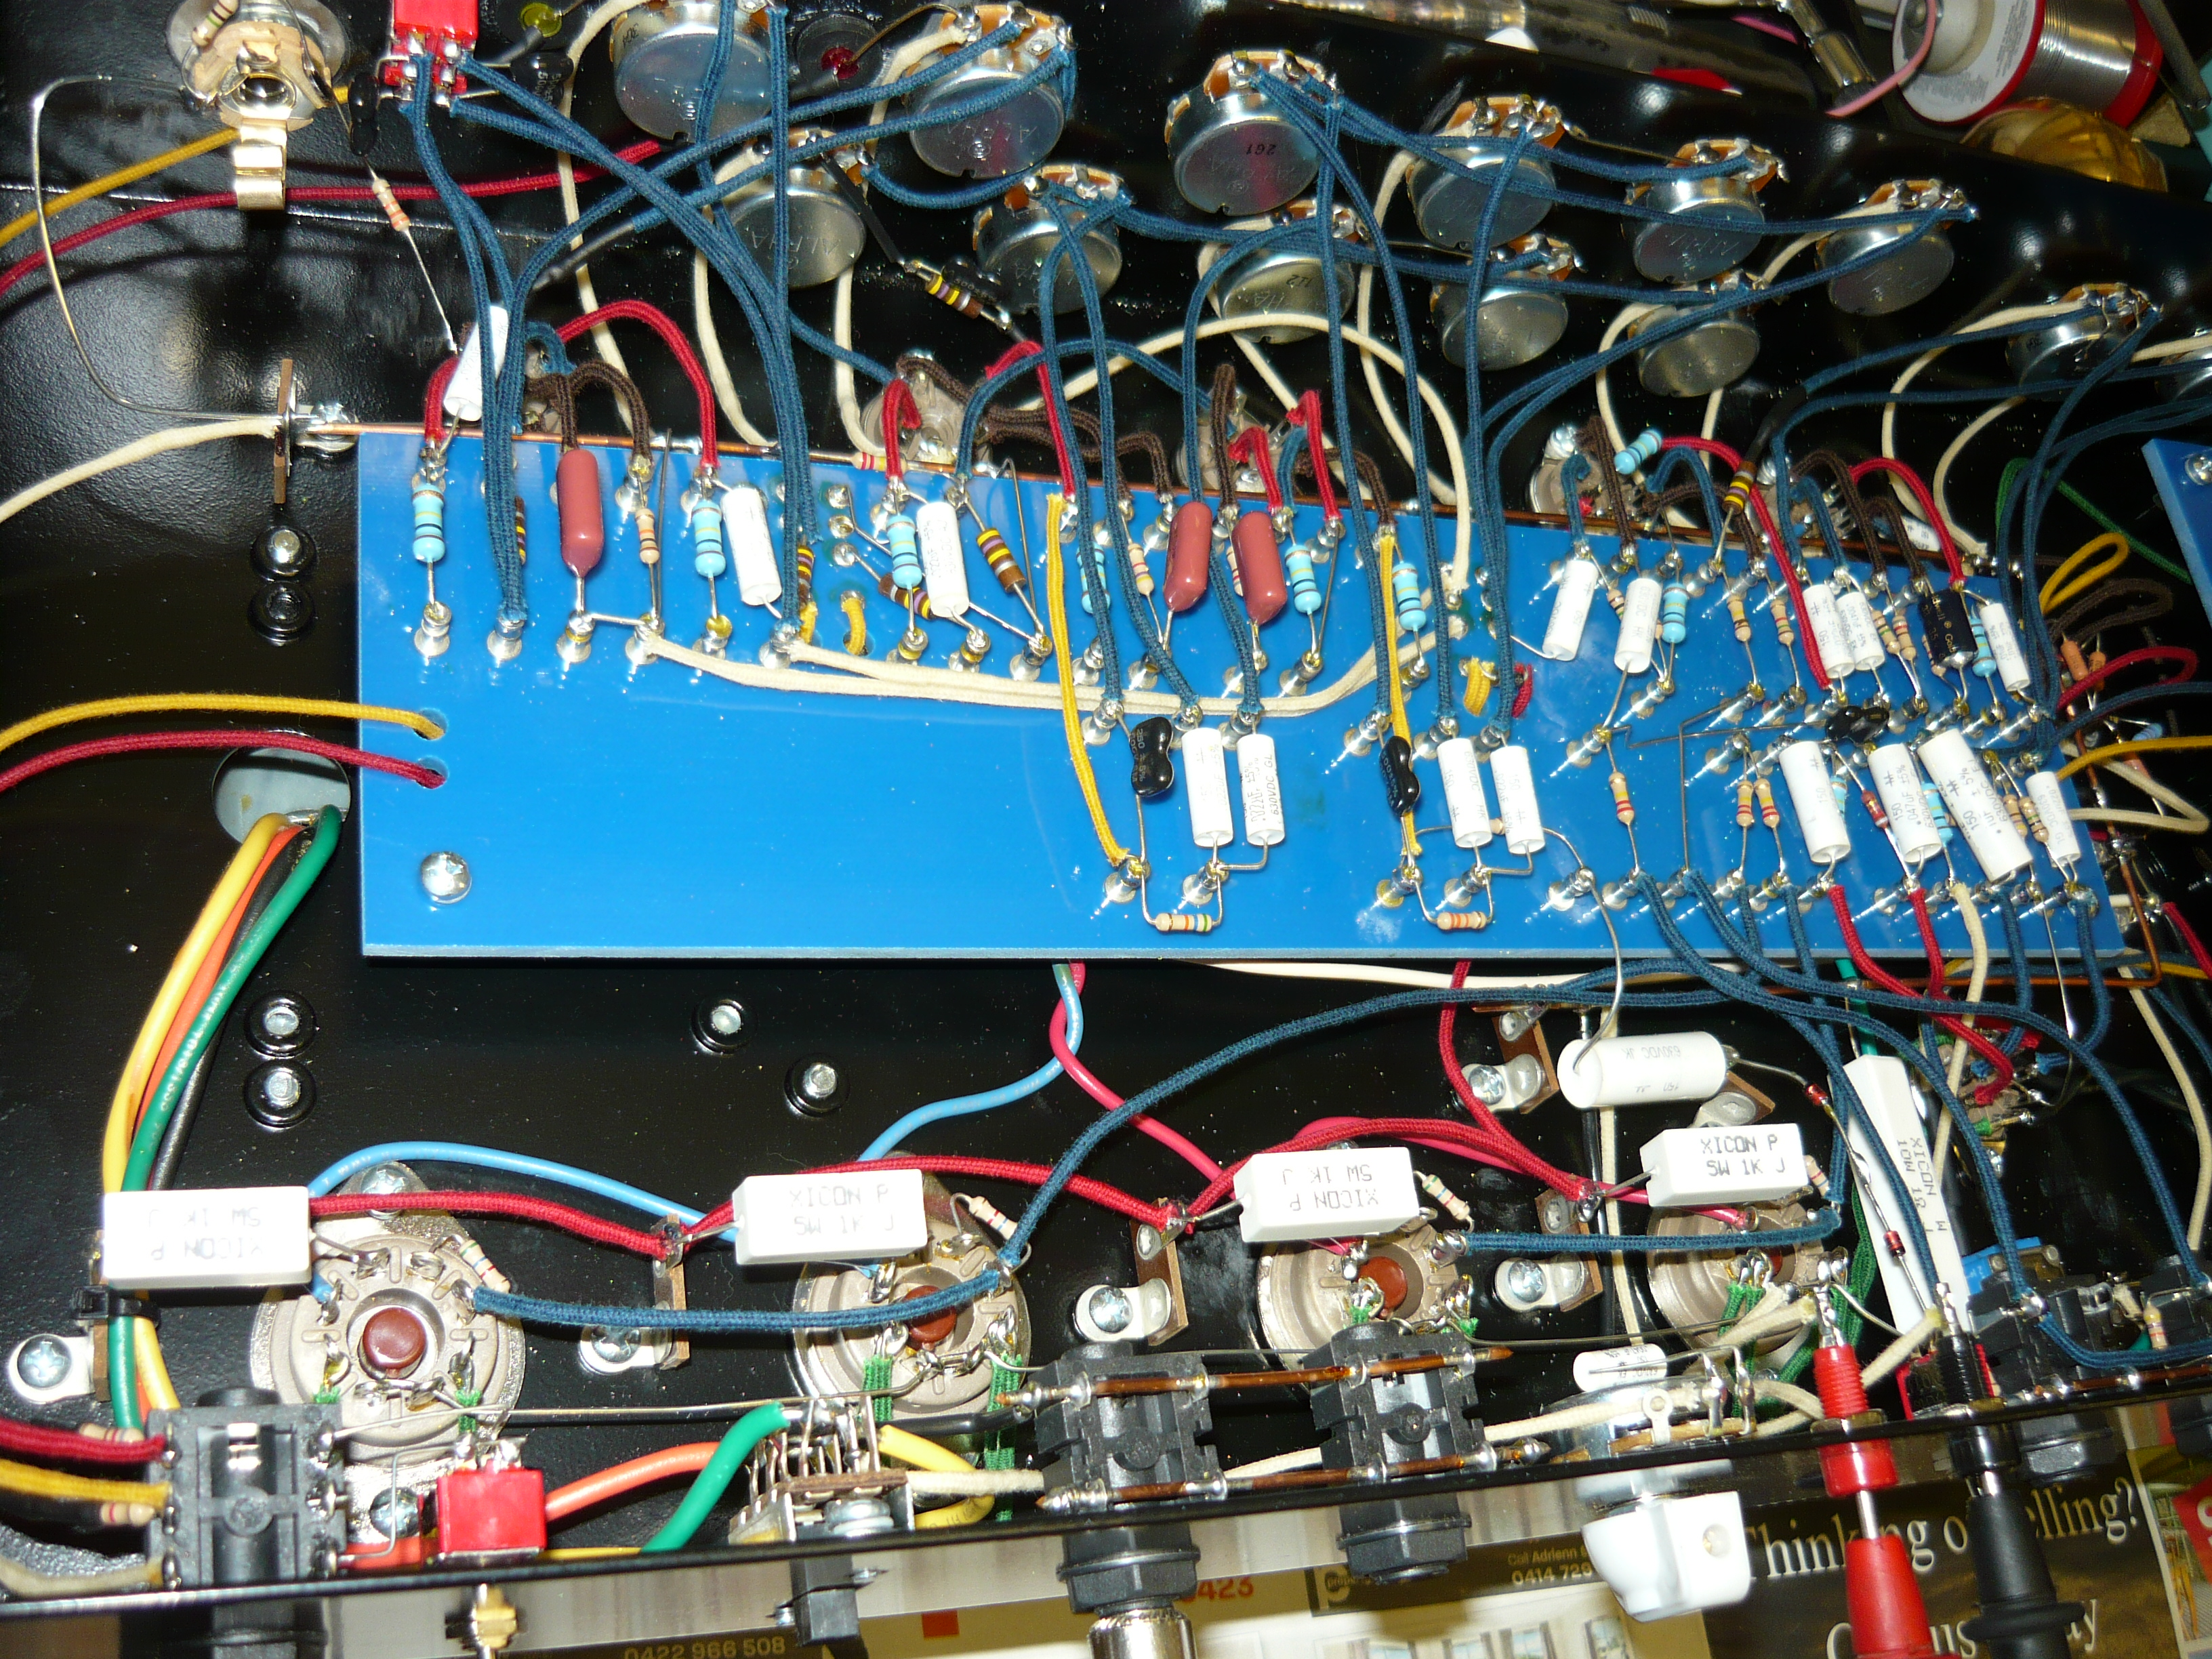 Amp Repair Ivanrichards Page 2 Higain Speaker Listening Amplifier Circuit Kit Aa5 Landry Turret Board And Hand Wiring